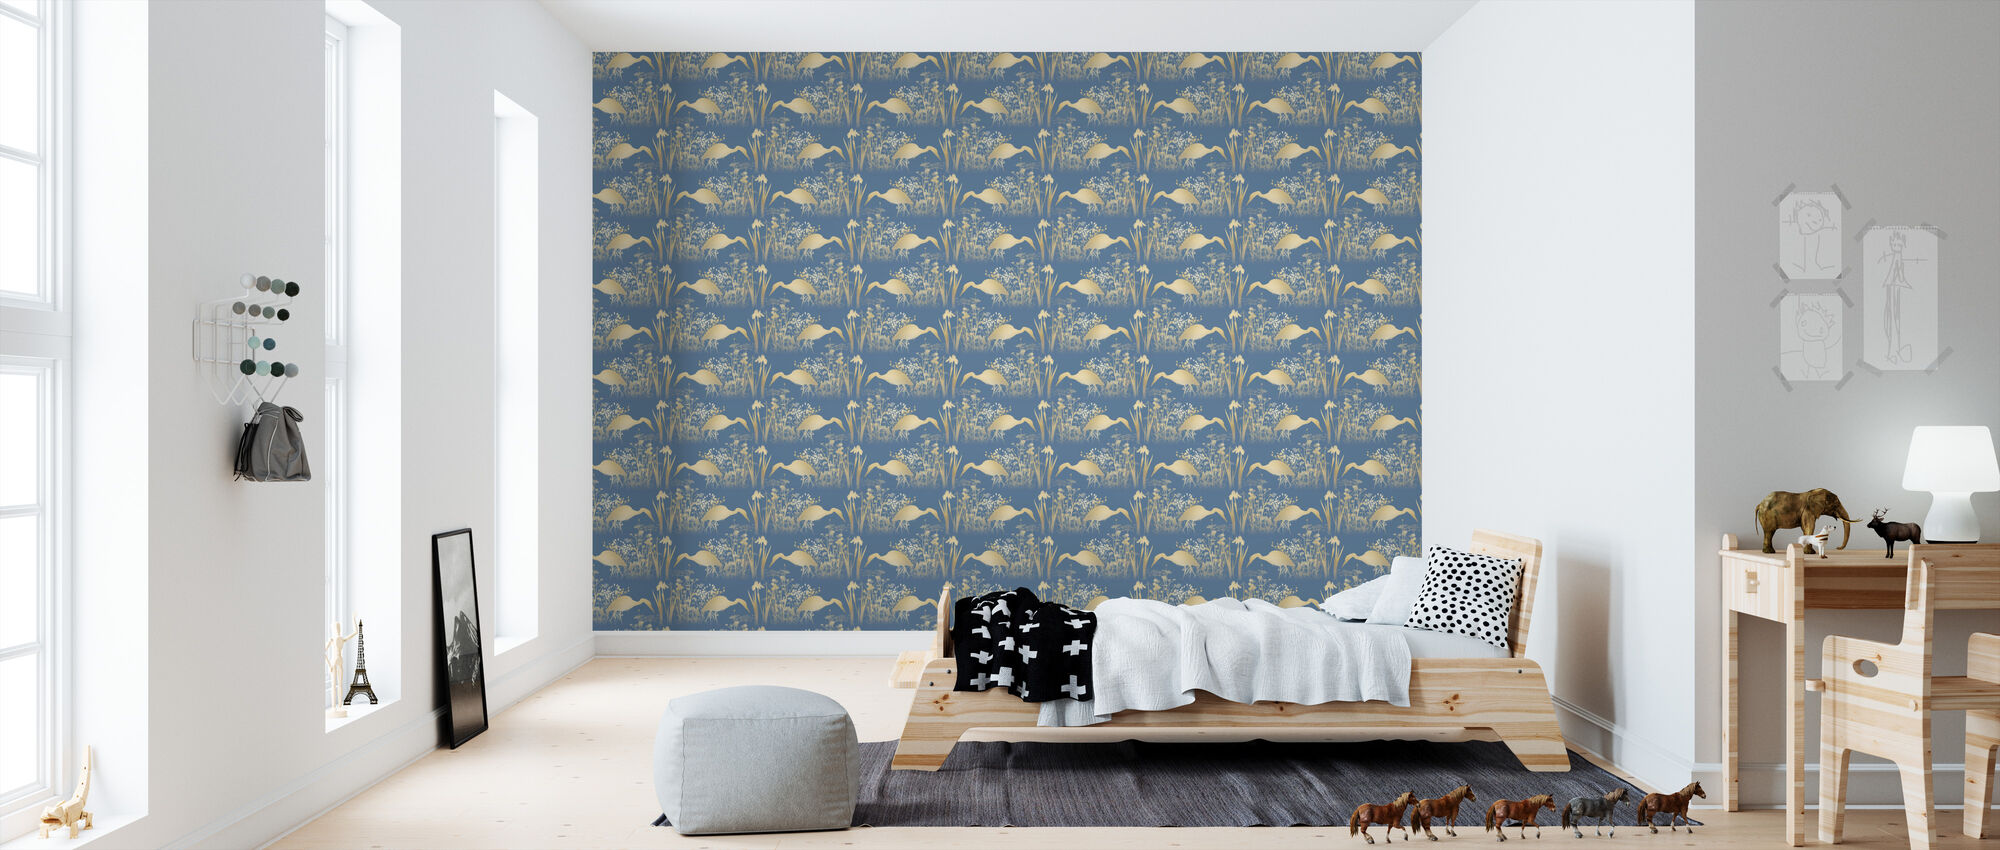 fishing heron goldenlight stilvolle tapete h chster qualit t mit schneller lieferung photowall. Black Bedroom Furniture Sets. Home Design Ideas